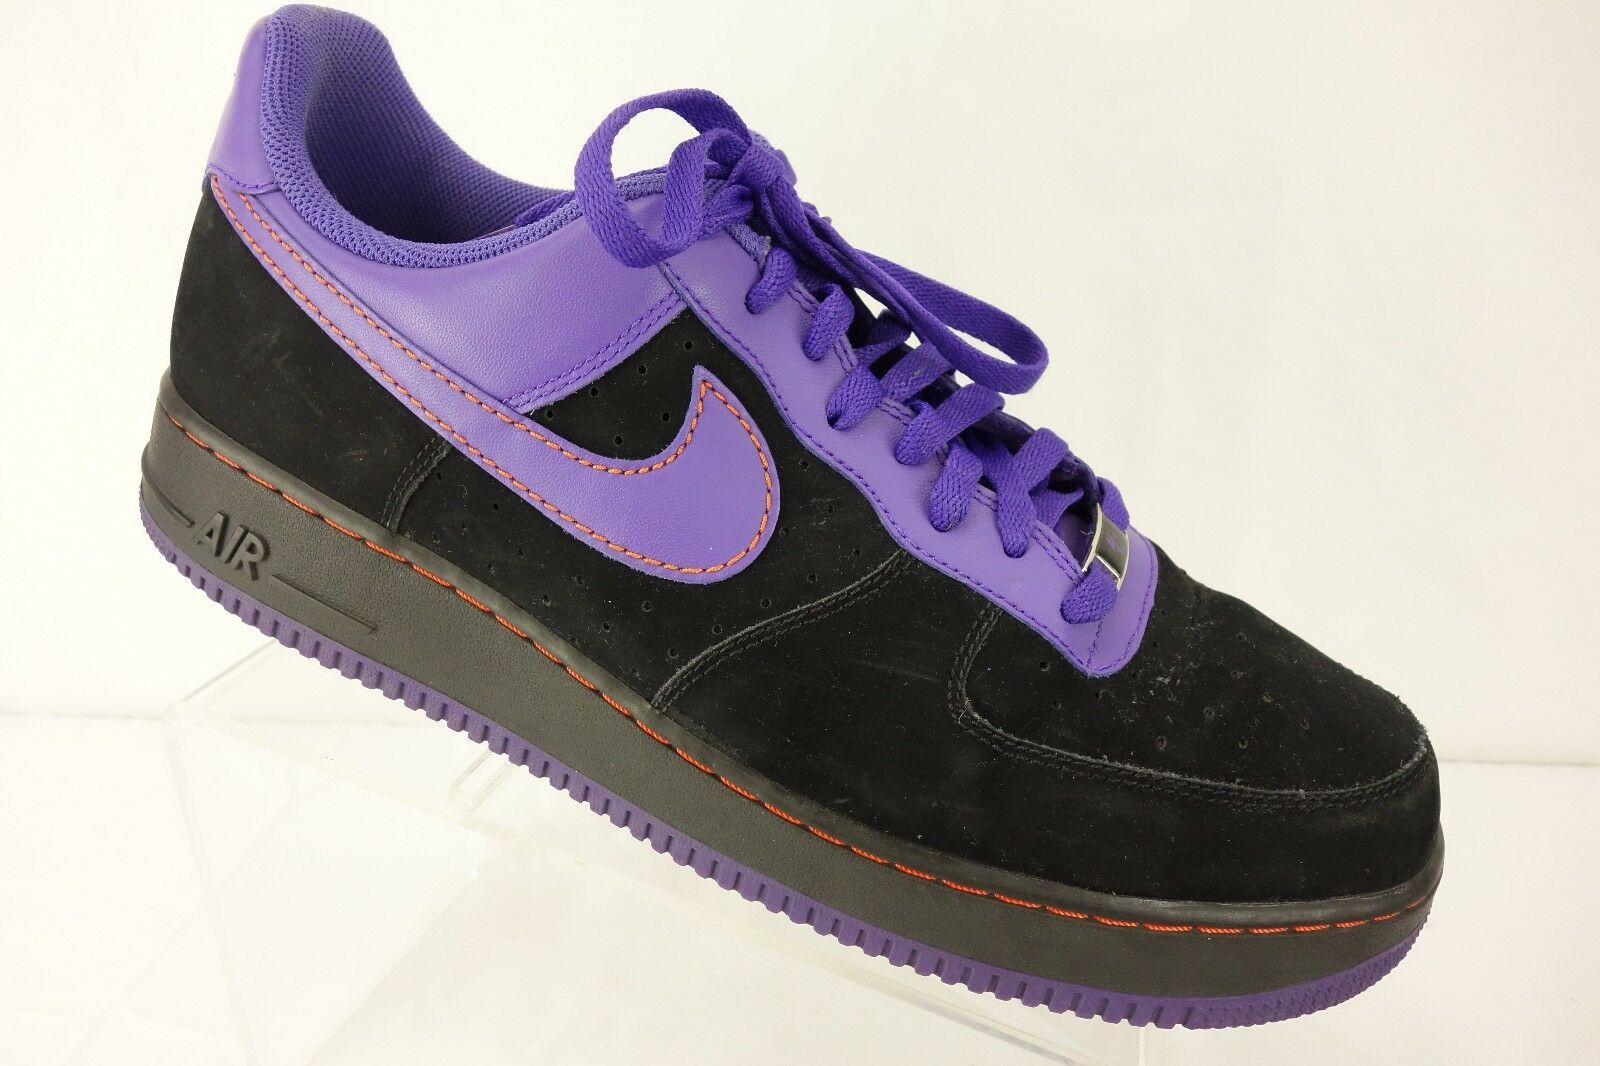 NIKE Air Force One '82 Black Purple Basketball Shoe Men's 13 Medium  New shoes for men and women, limited time discount